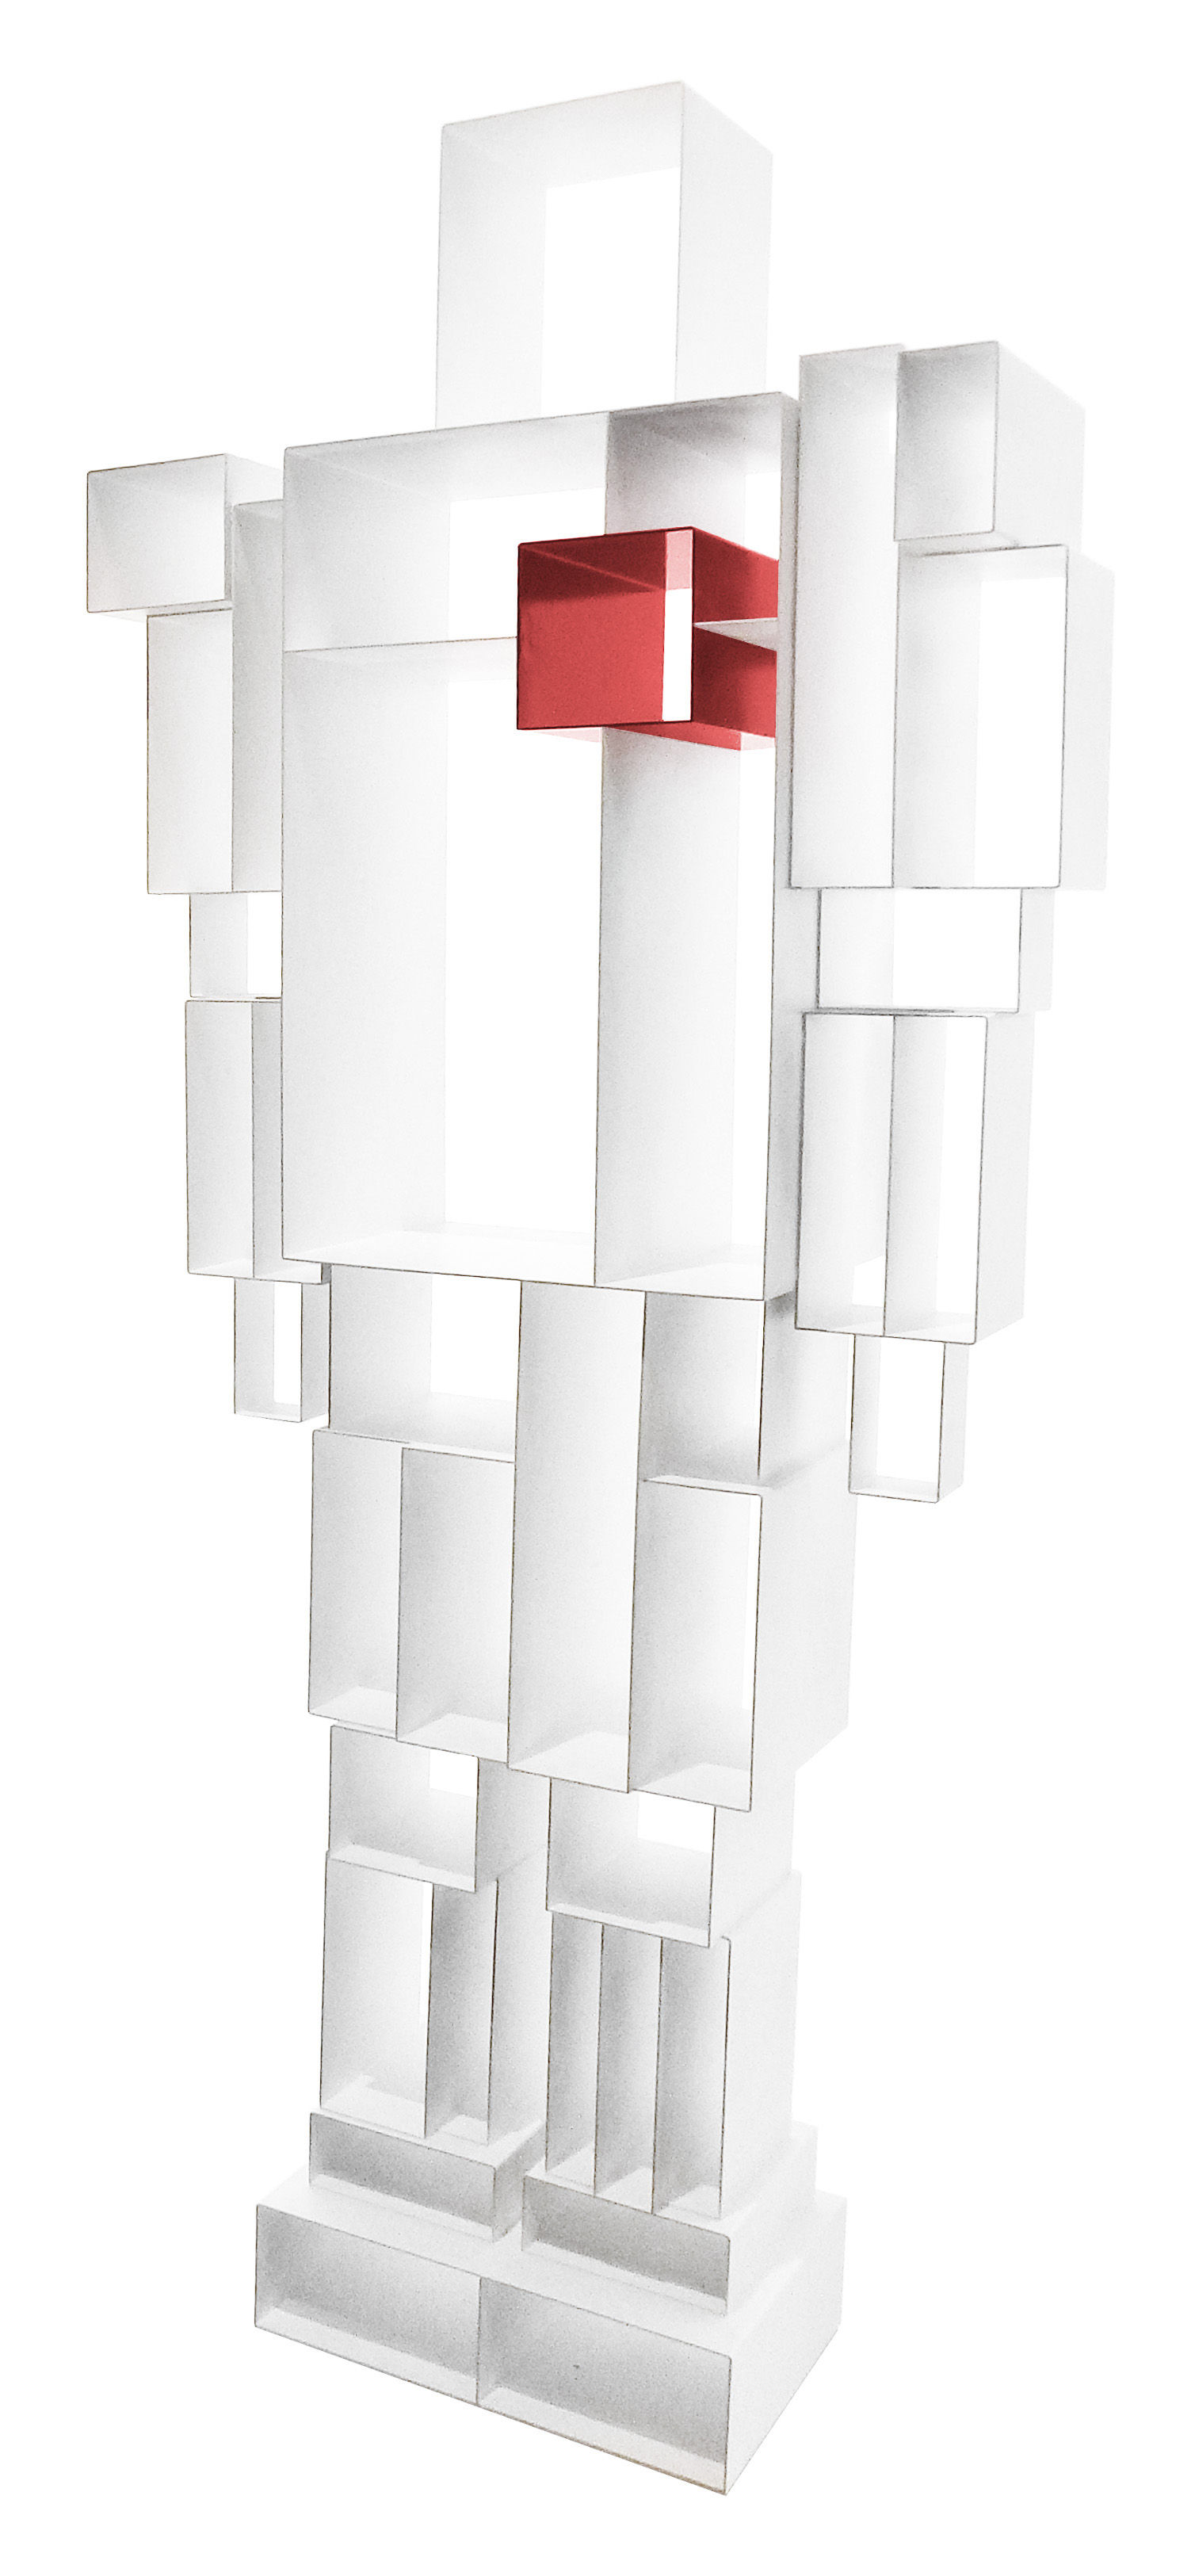 Furniture - Bookcases & Bookshelves - Robox Bookcase - L 78 cm x H 184 cm by Casamania - White / Red heart - Painted metal